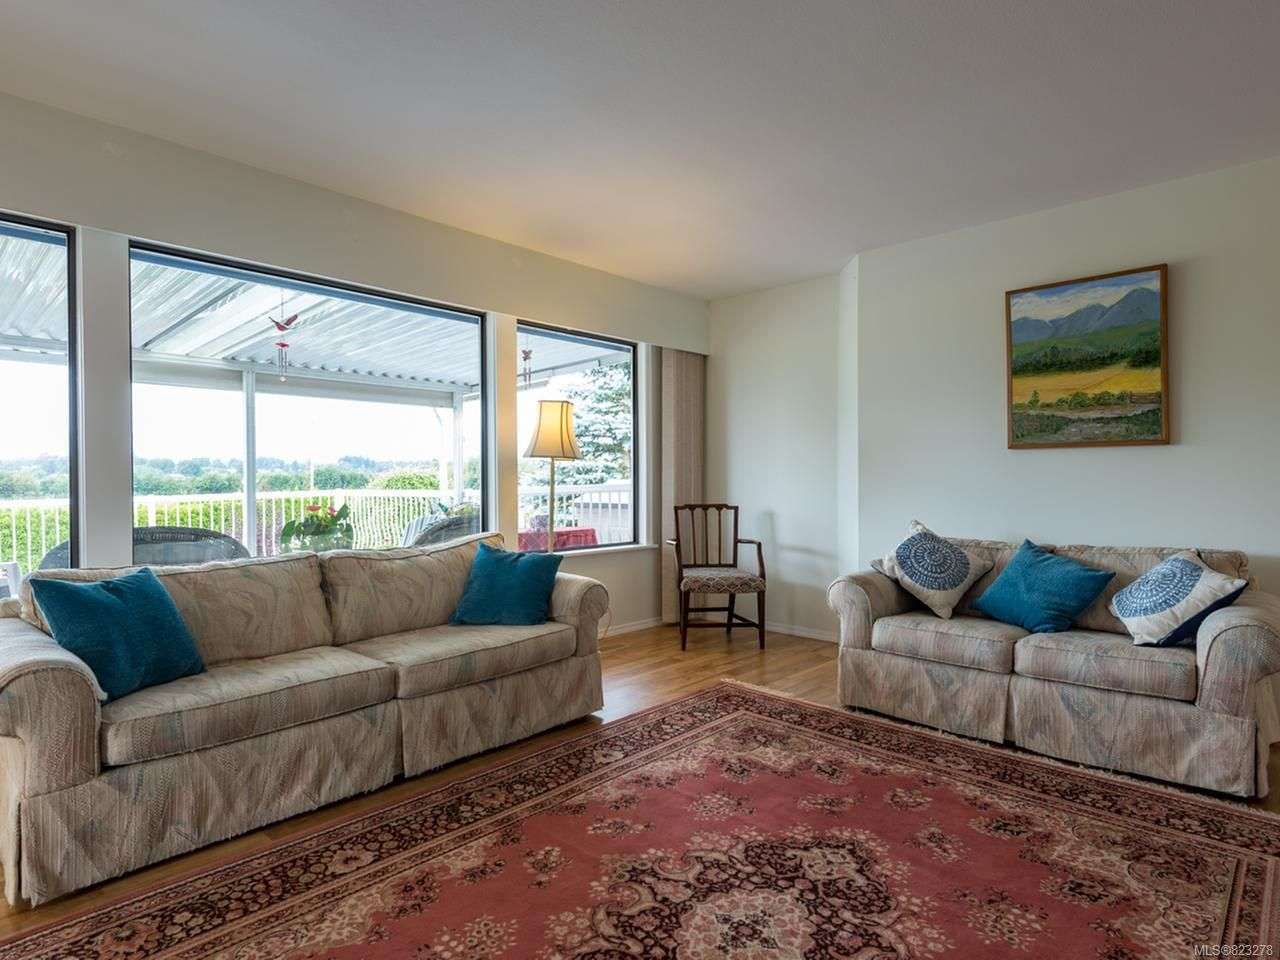 Photo 3: Photos: 1099 Williams Rd in COURTENAY: CV Courtenay East House for sale (Comox Valley)  : MLS®# 823278